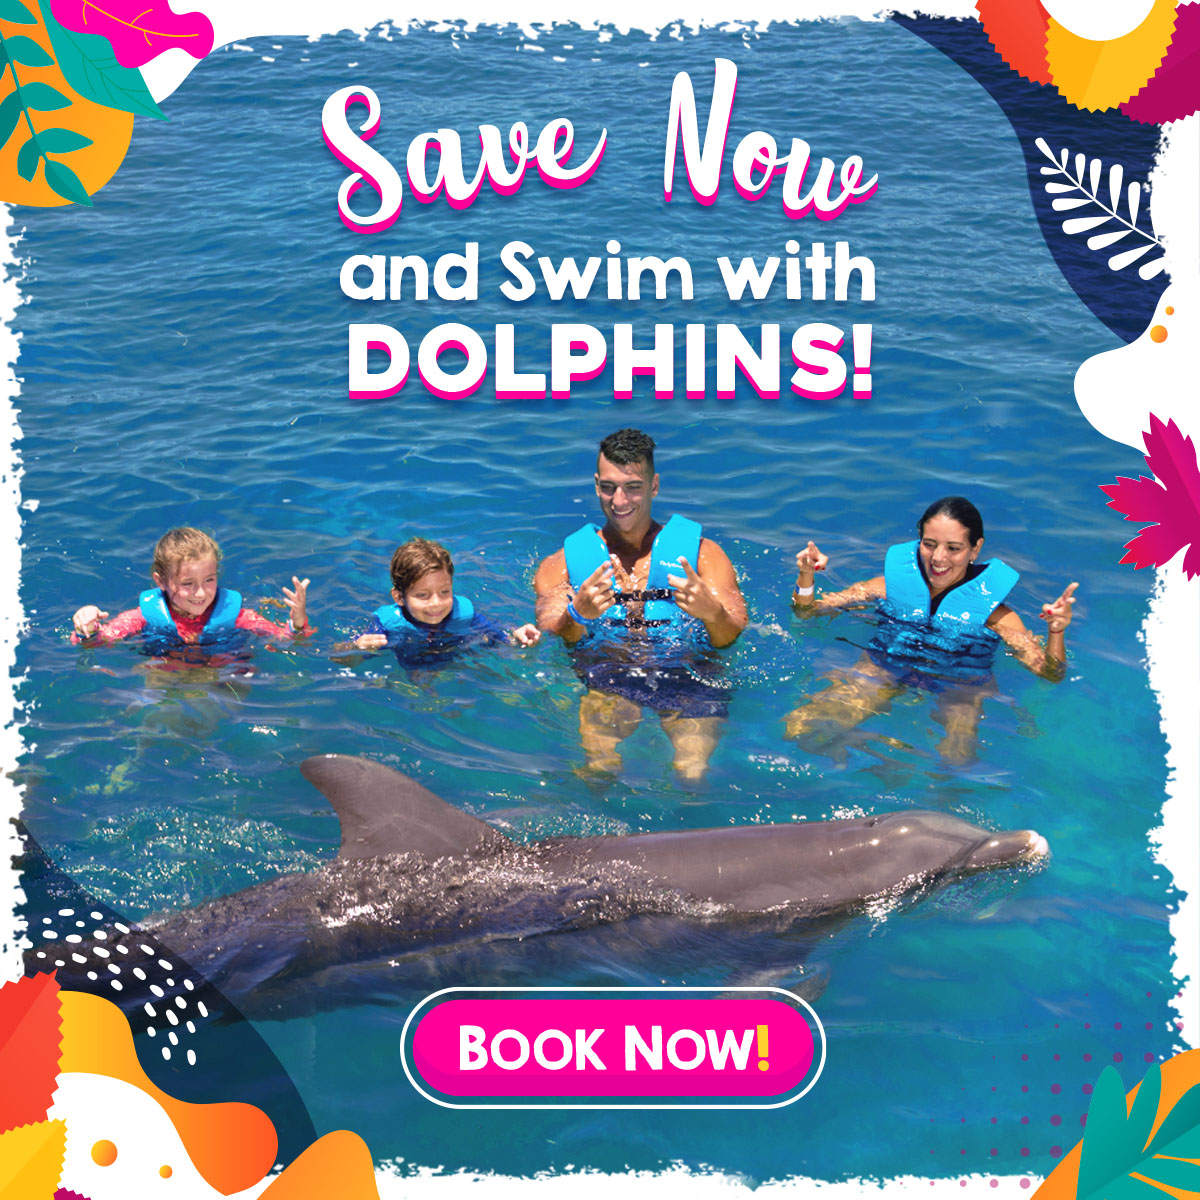 Delphinus swim with dolphins cancun and riviera maya